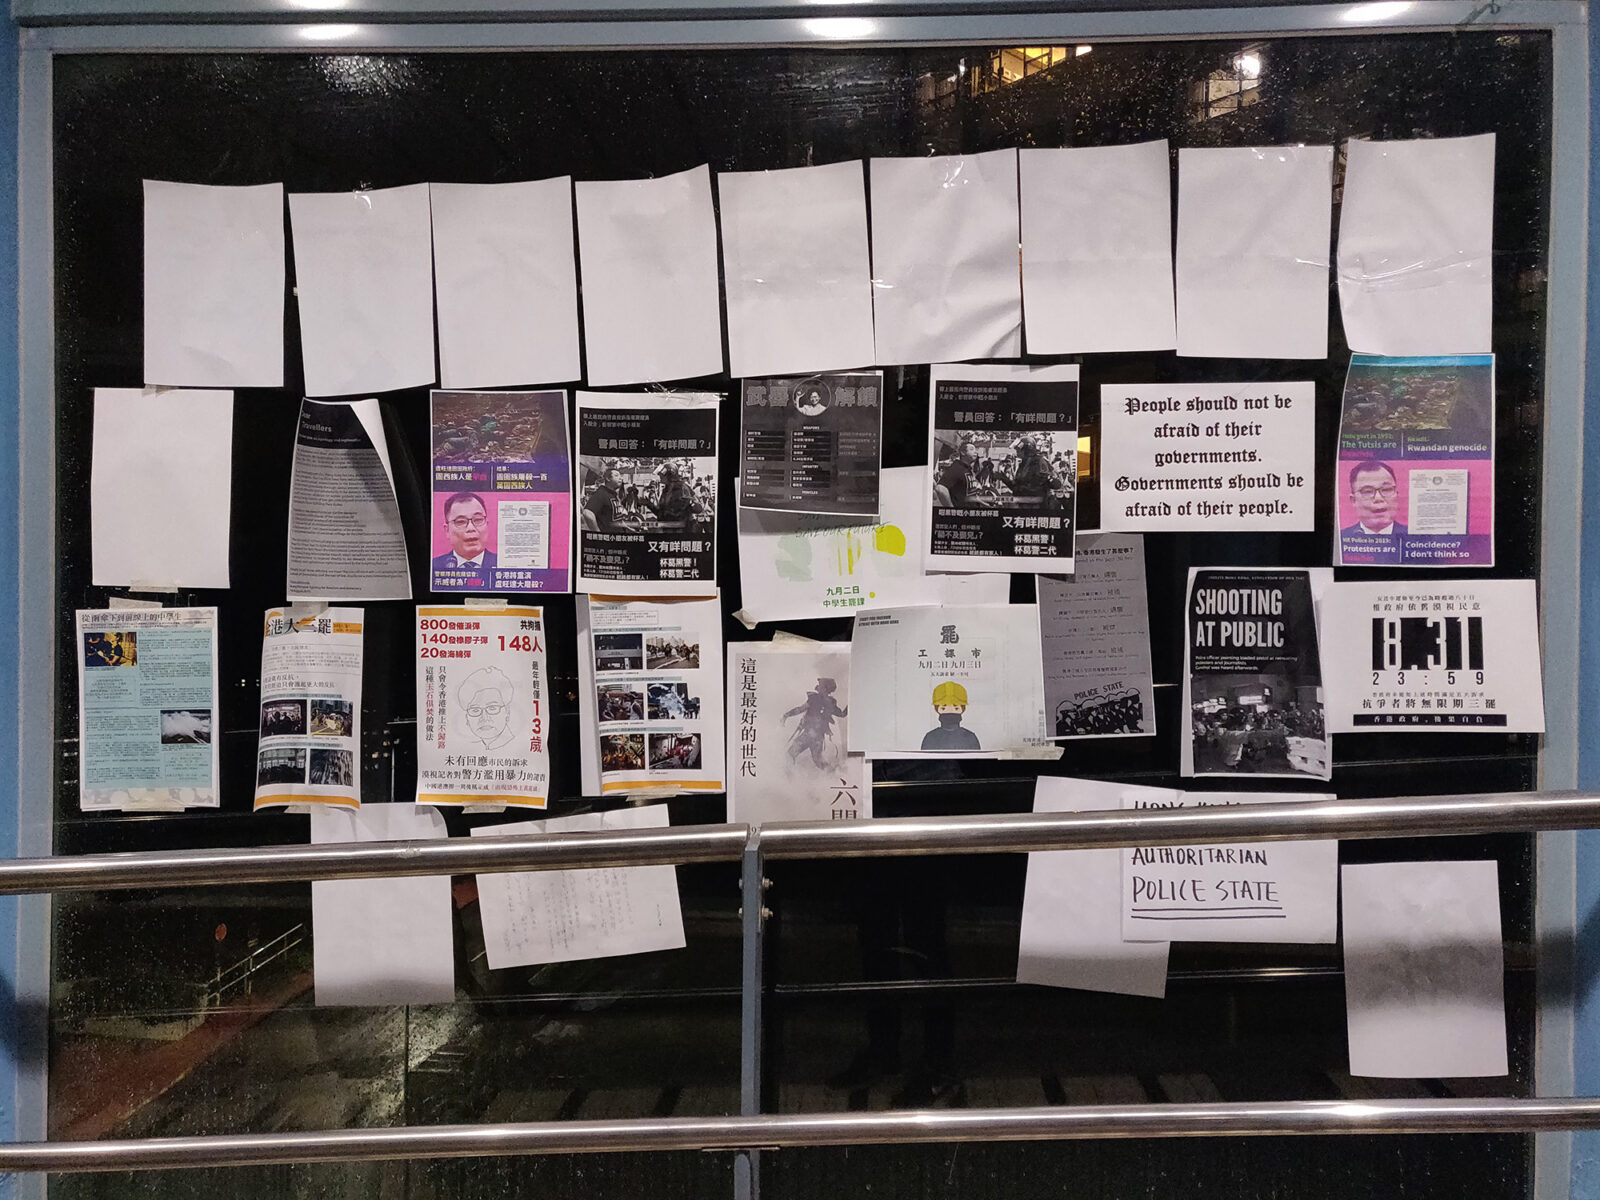 protestaffiches in Hongkong 2 – Wouter